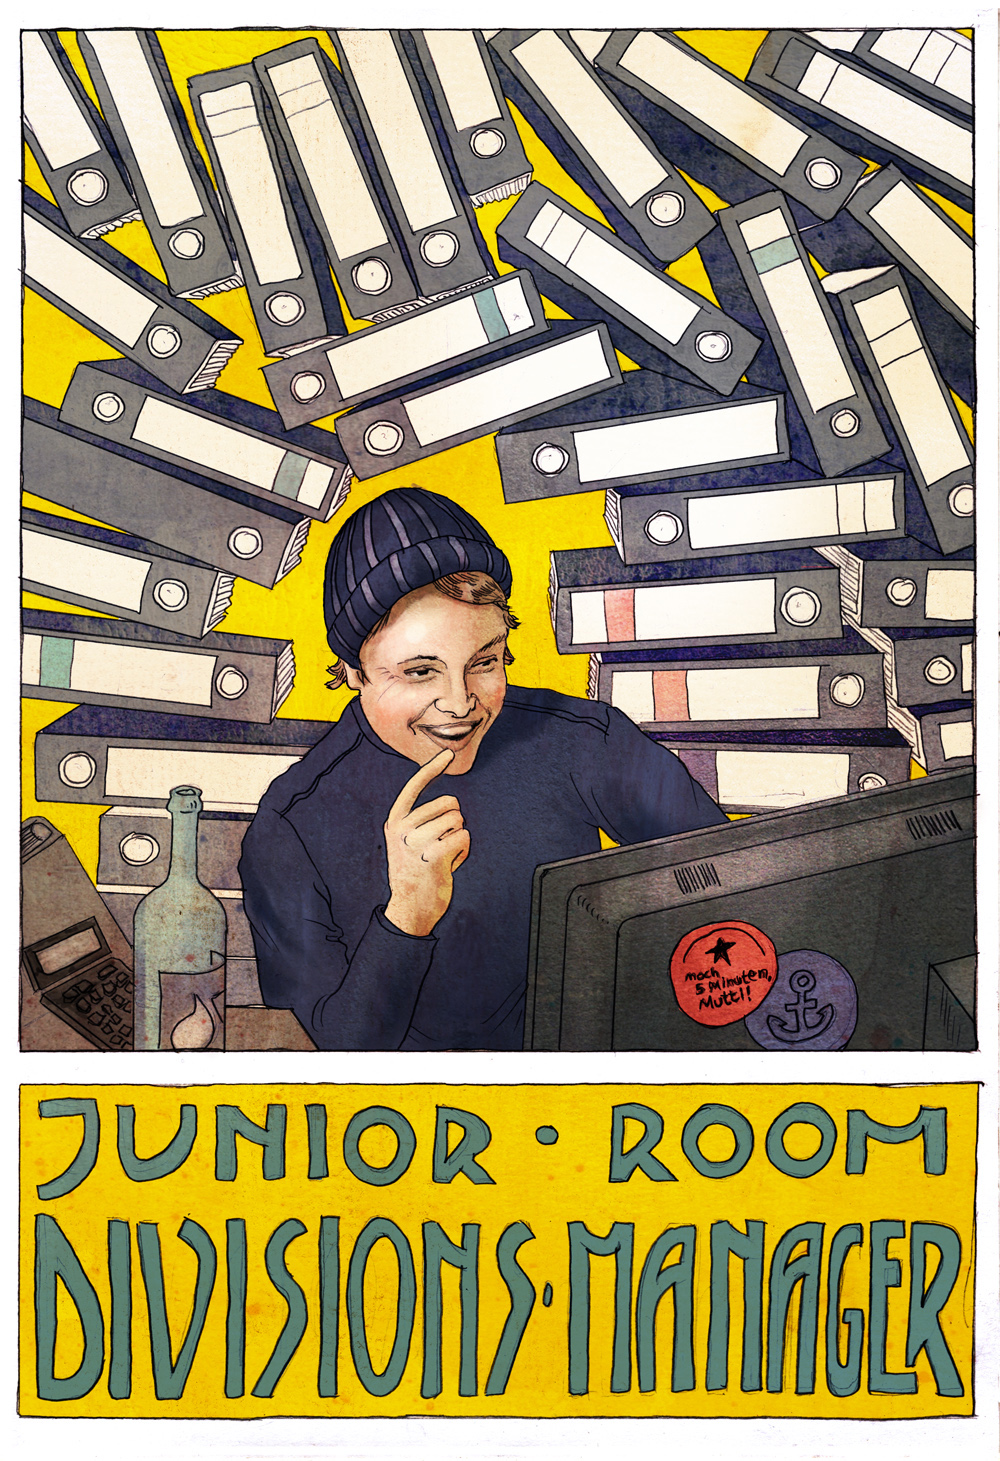 Juniorroomdivisionsmanager.